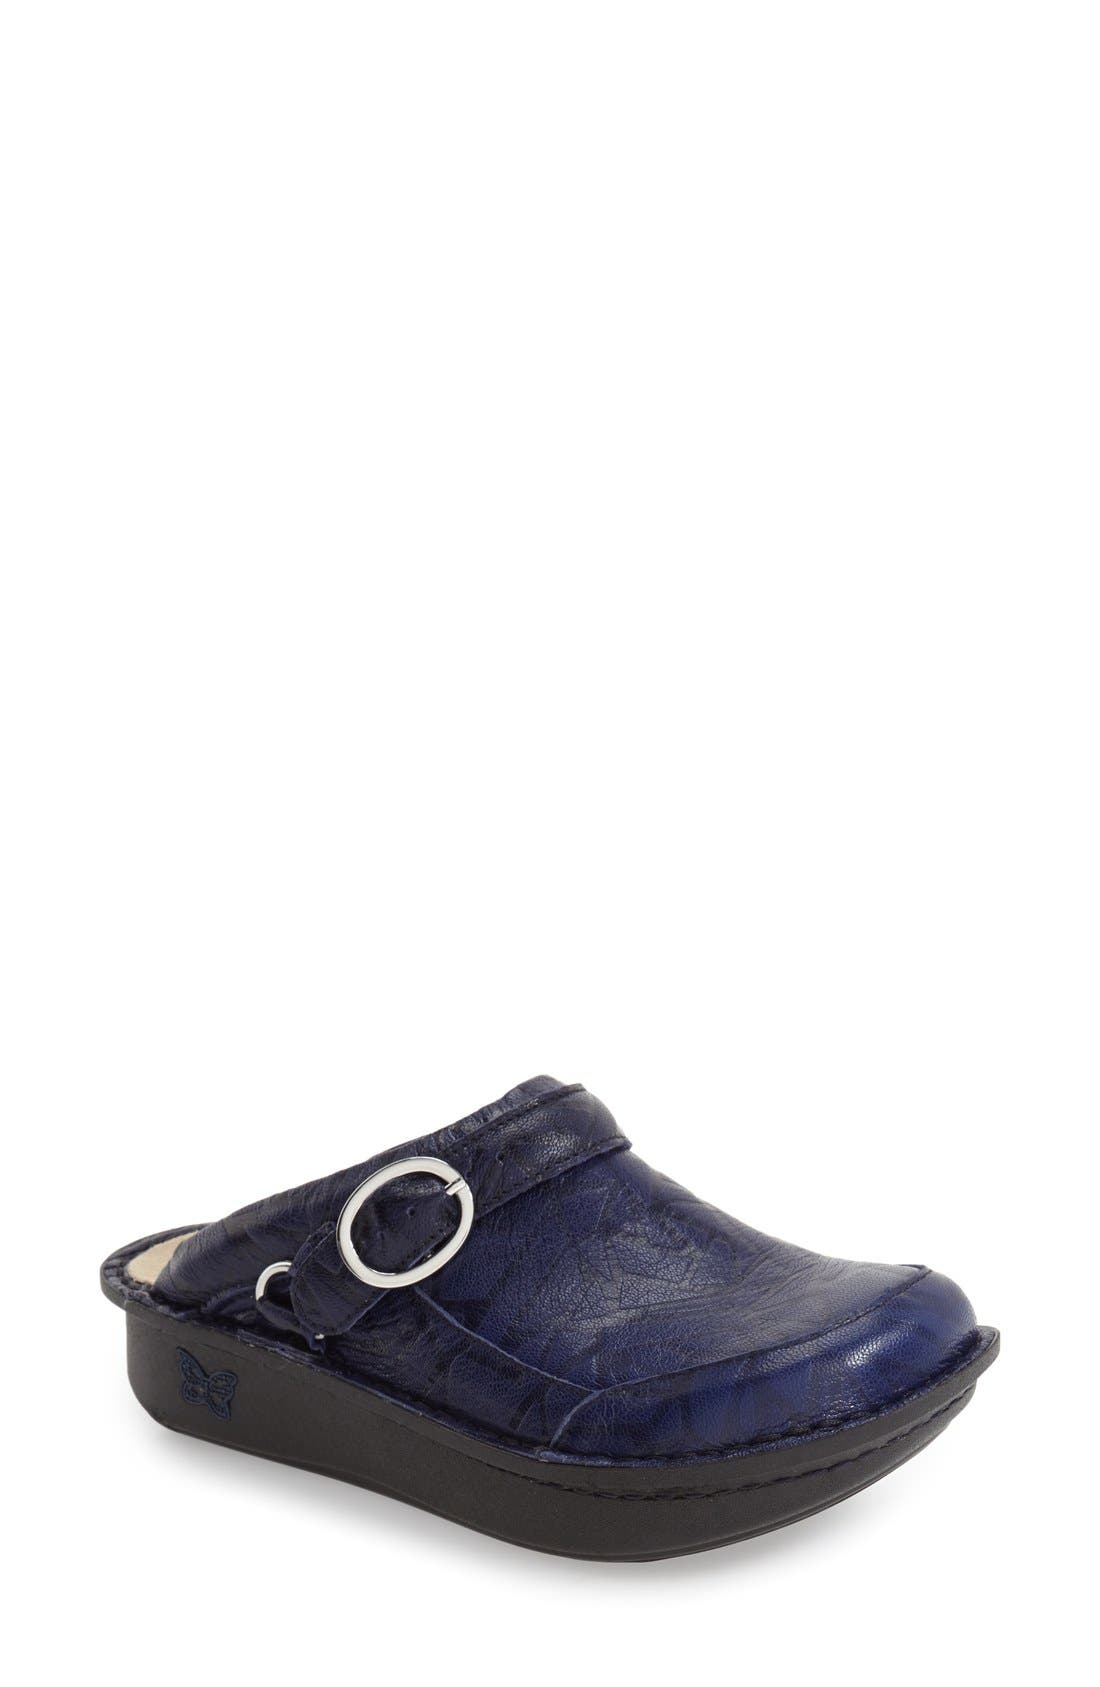 Alternate Image 1 Selected - Alegria Seville Water Resistant Clog (Women)